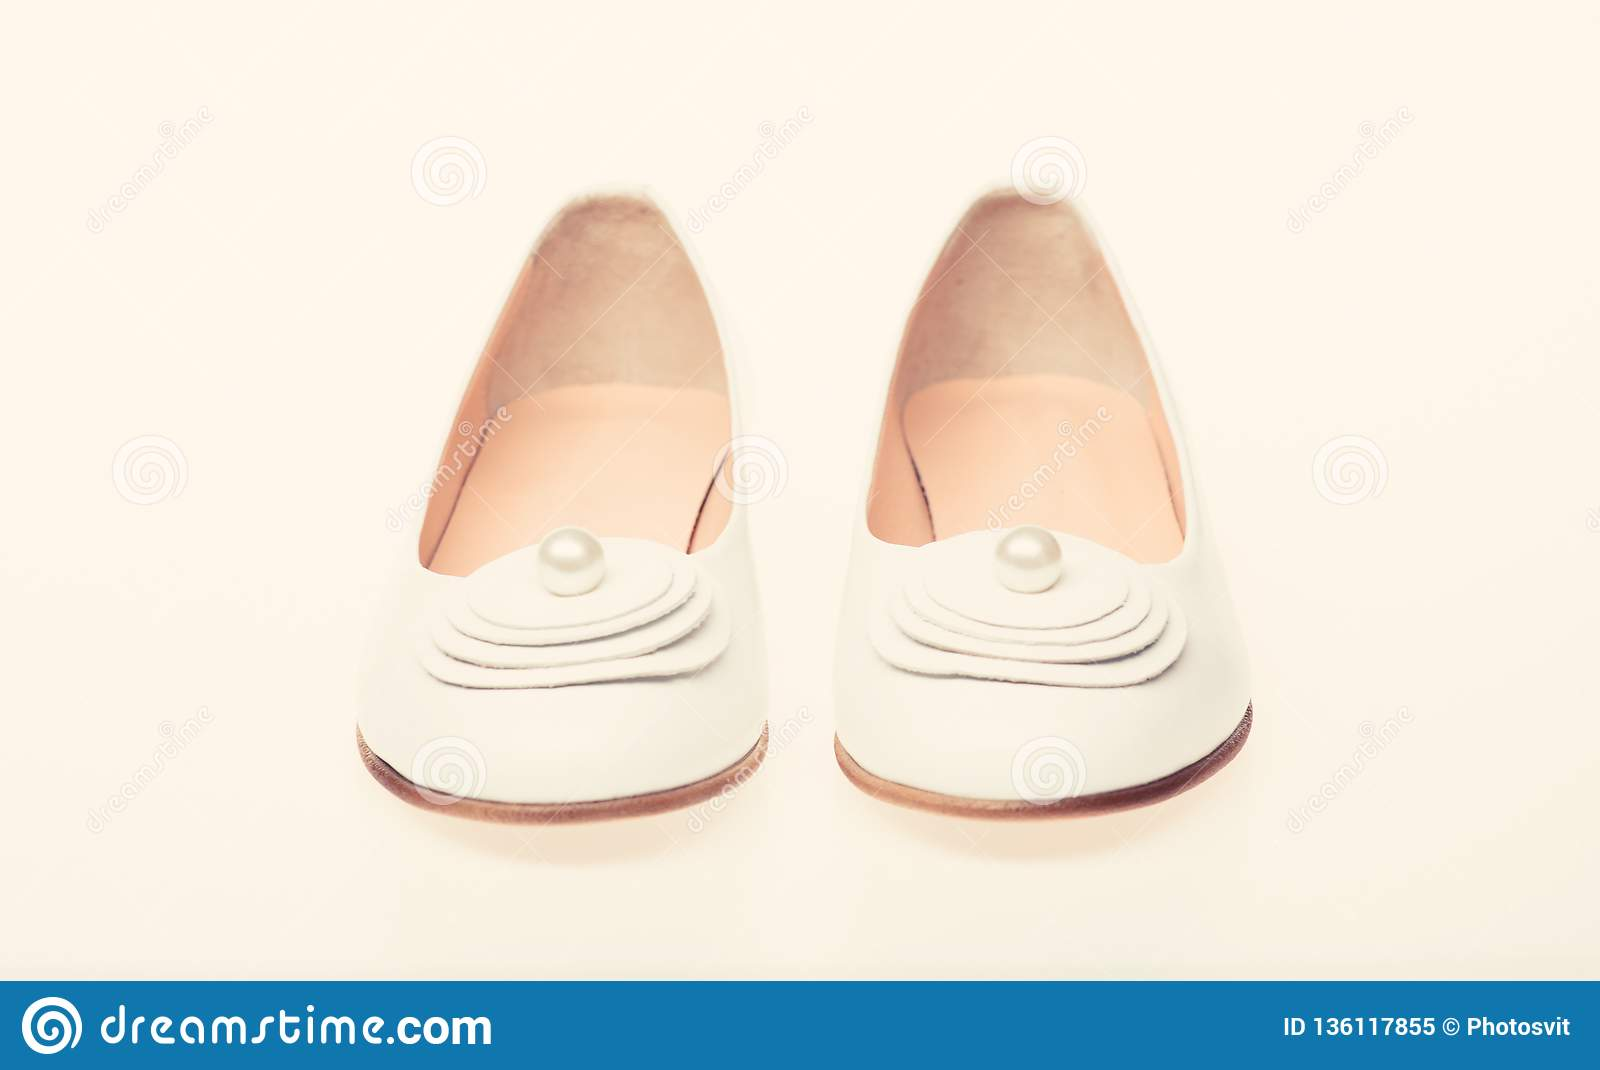 825f8fa8a Shoes made out of white leather on white background, isolated. Footwear for  women on flat sole with pearl bead as decor. Minimalism concept.